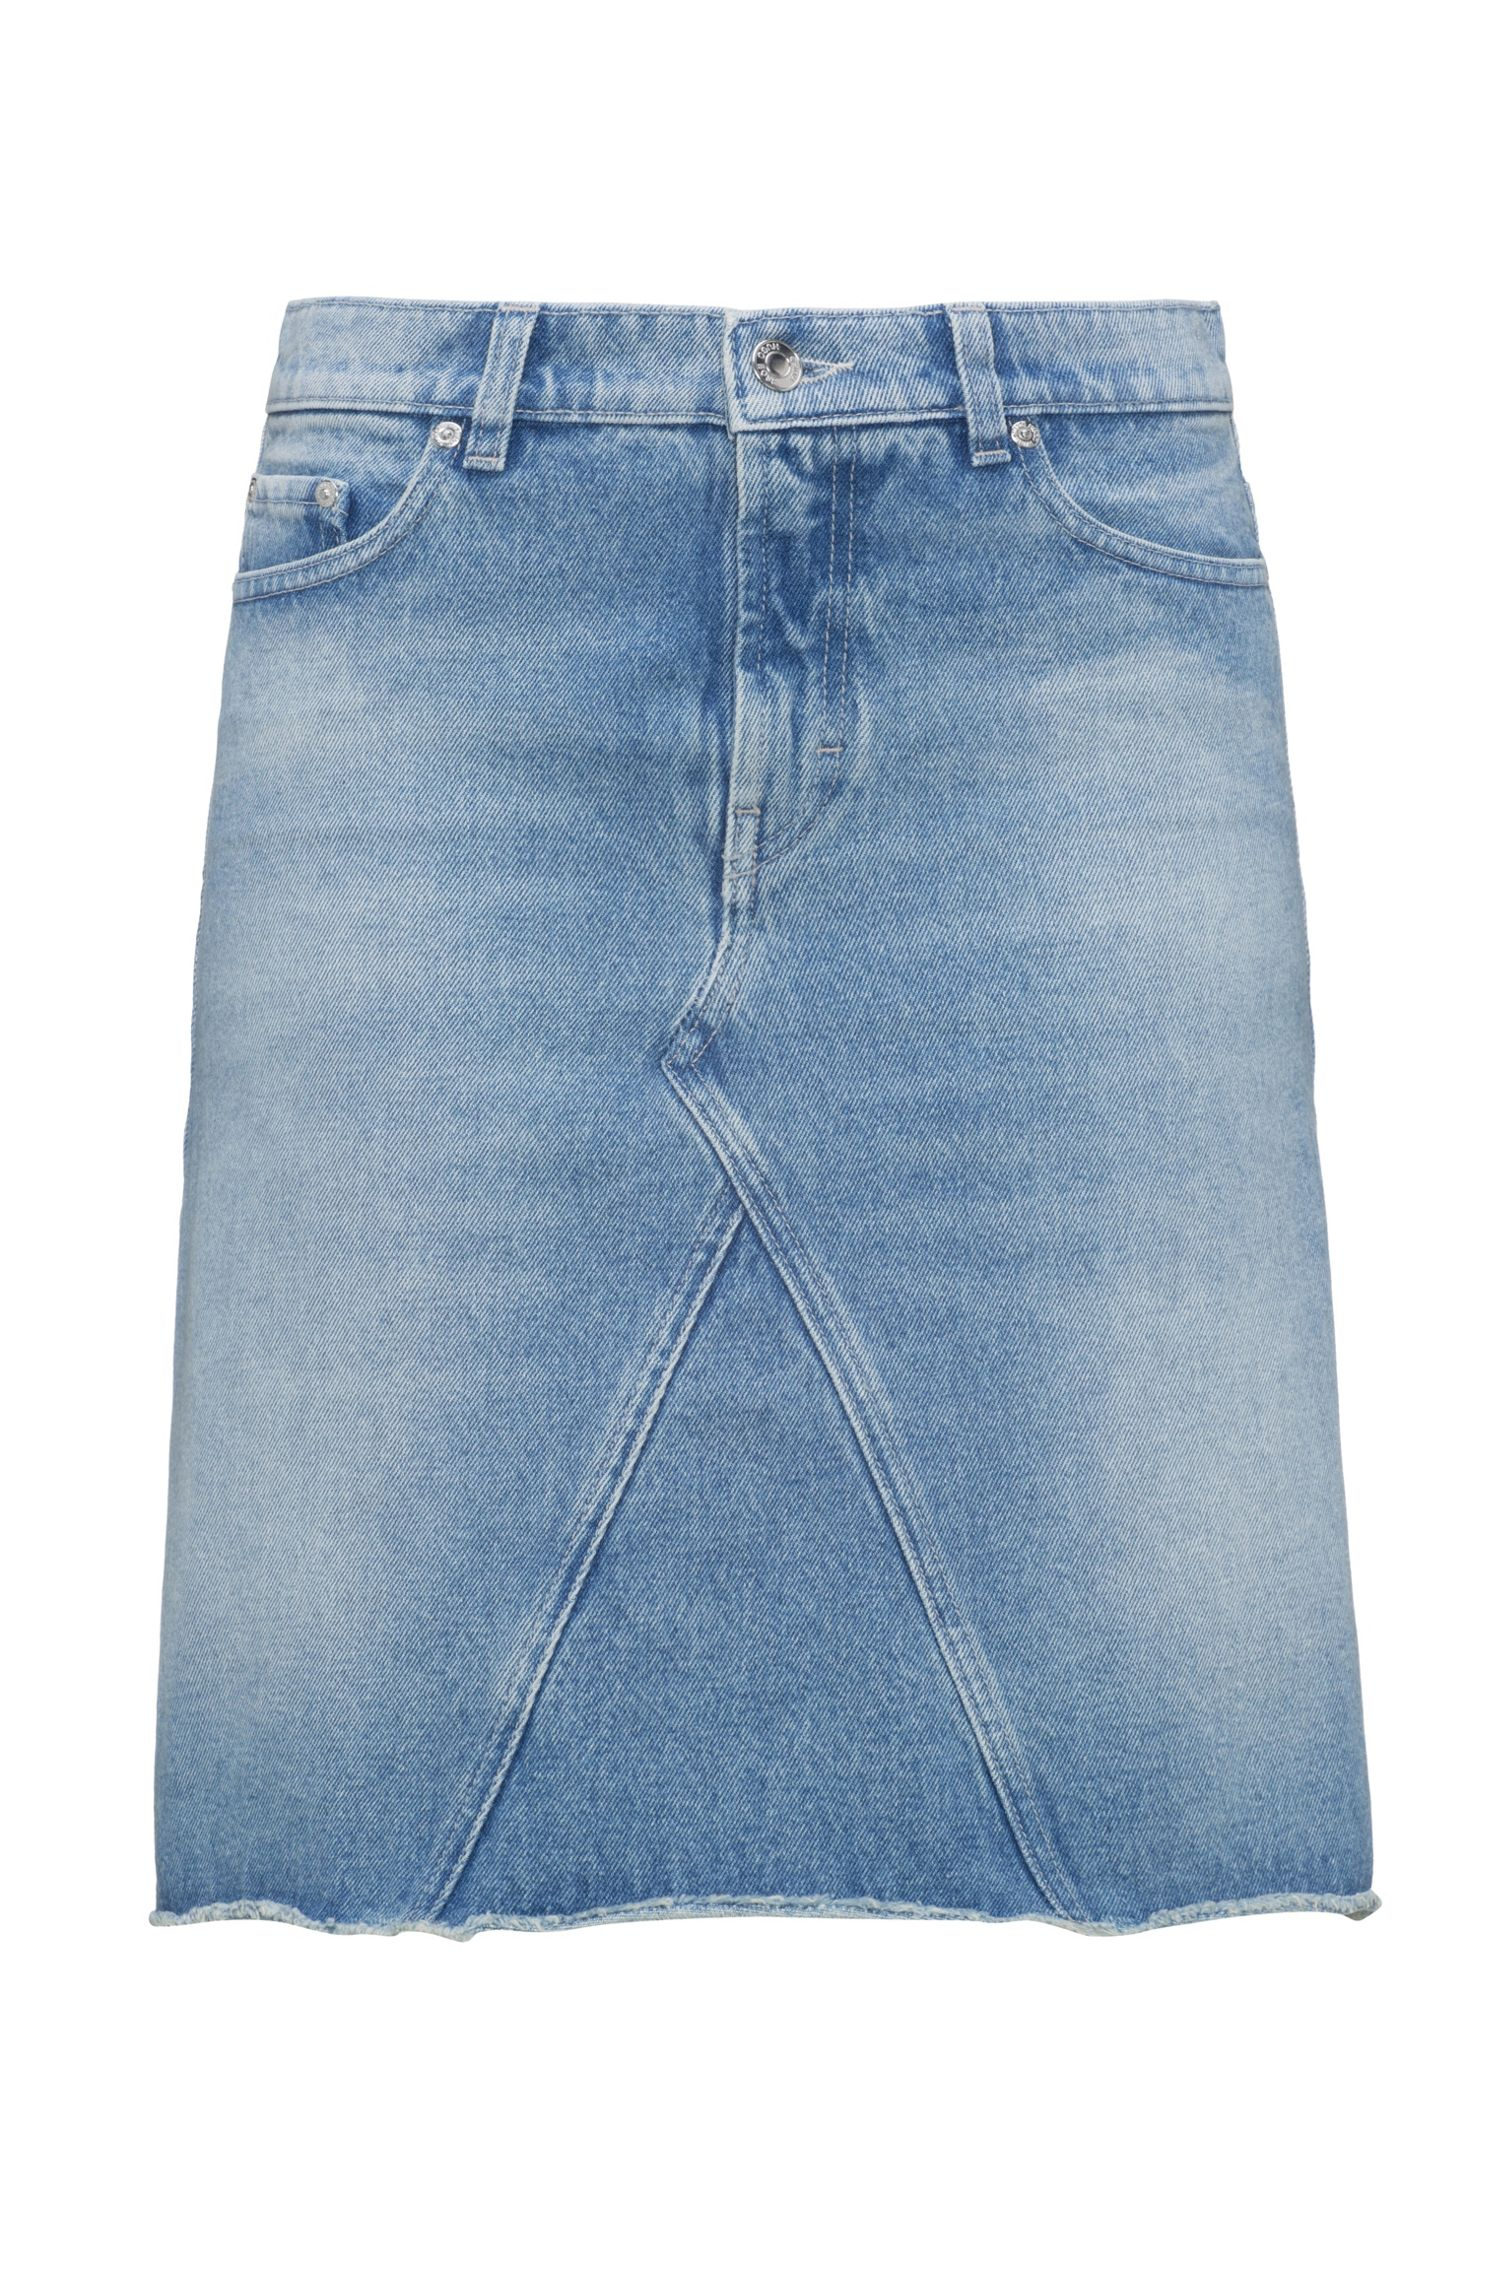 Jeansrock in A-Linie mit offenem Saum